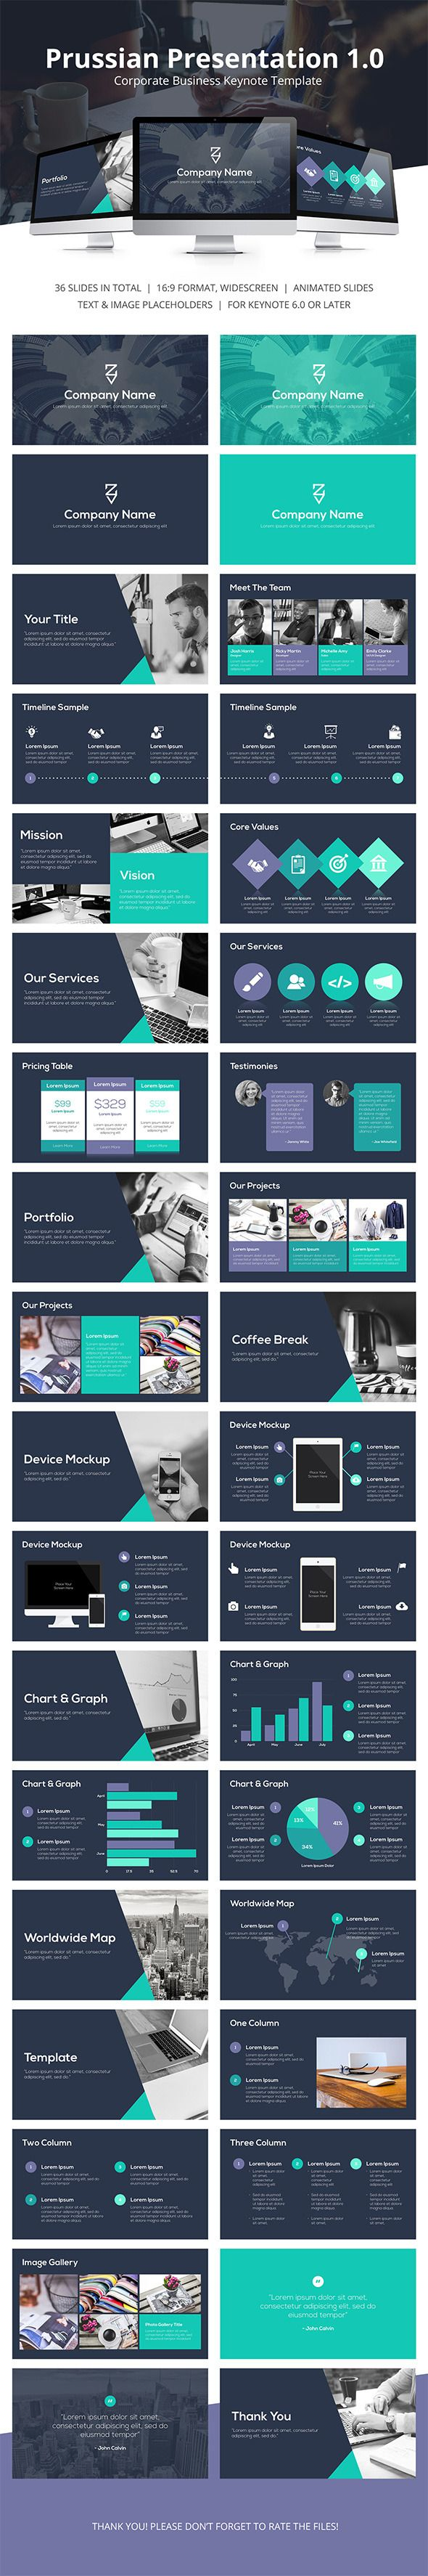 Website design presentation template vatozozdevelopment website design presentation template toneelgroepblik Images